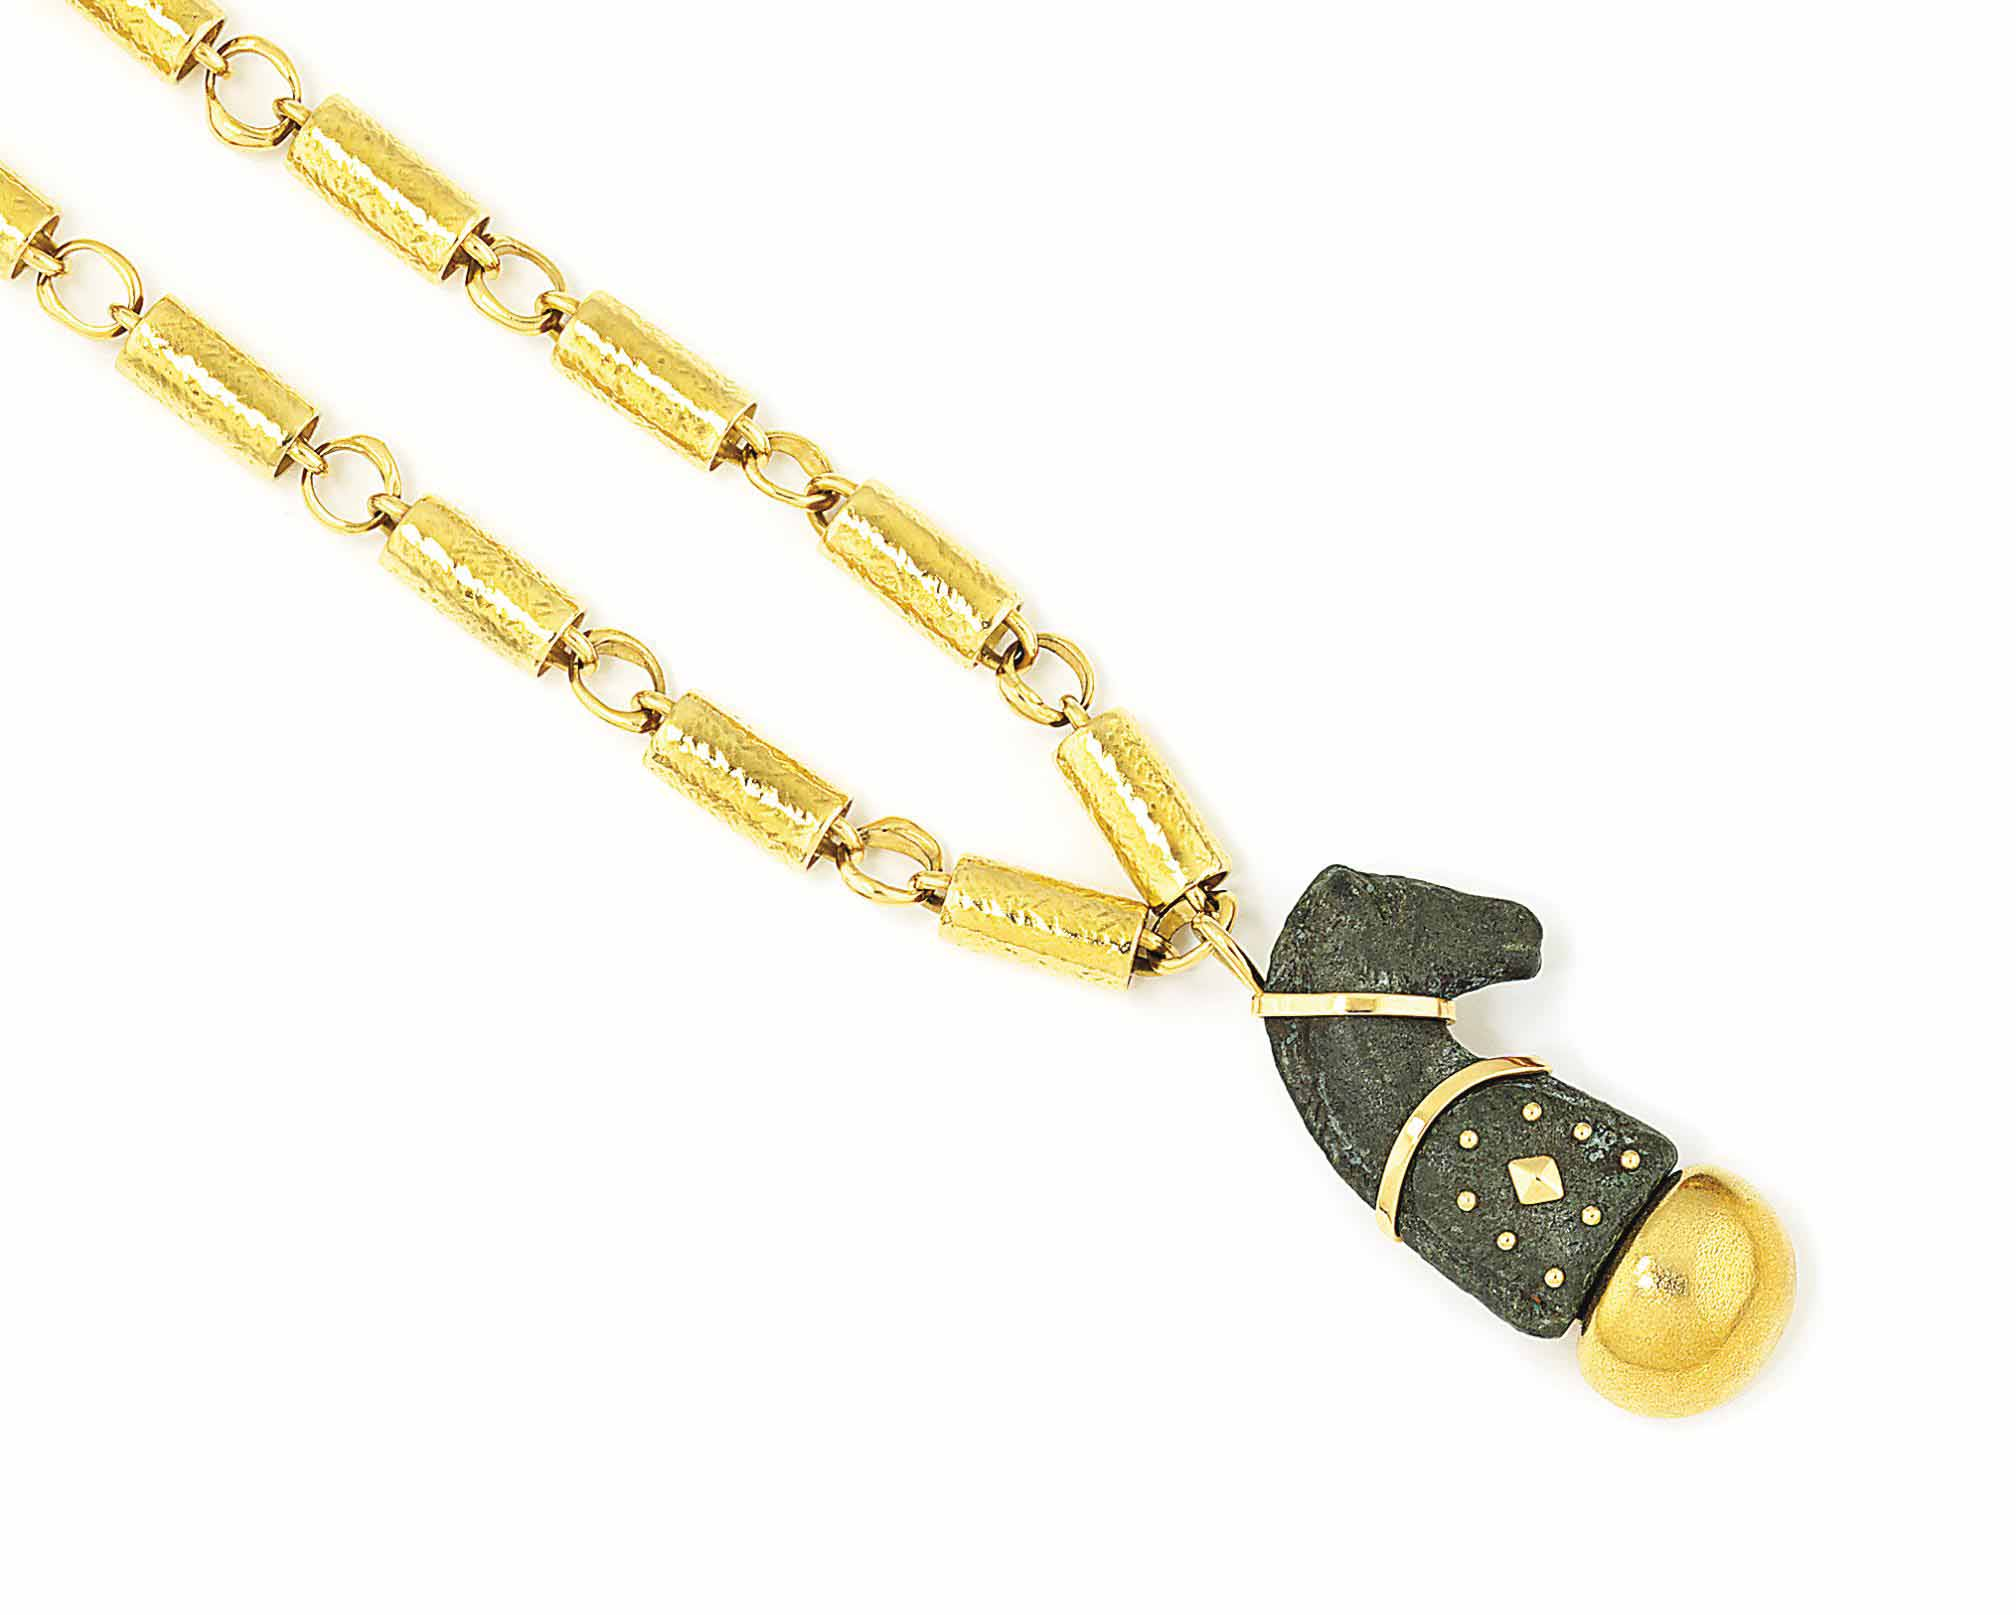 AN 18CT GOLD AND BRONZE NECKLACE, BY ELIZABETH GAGE